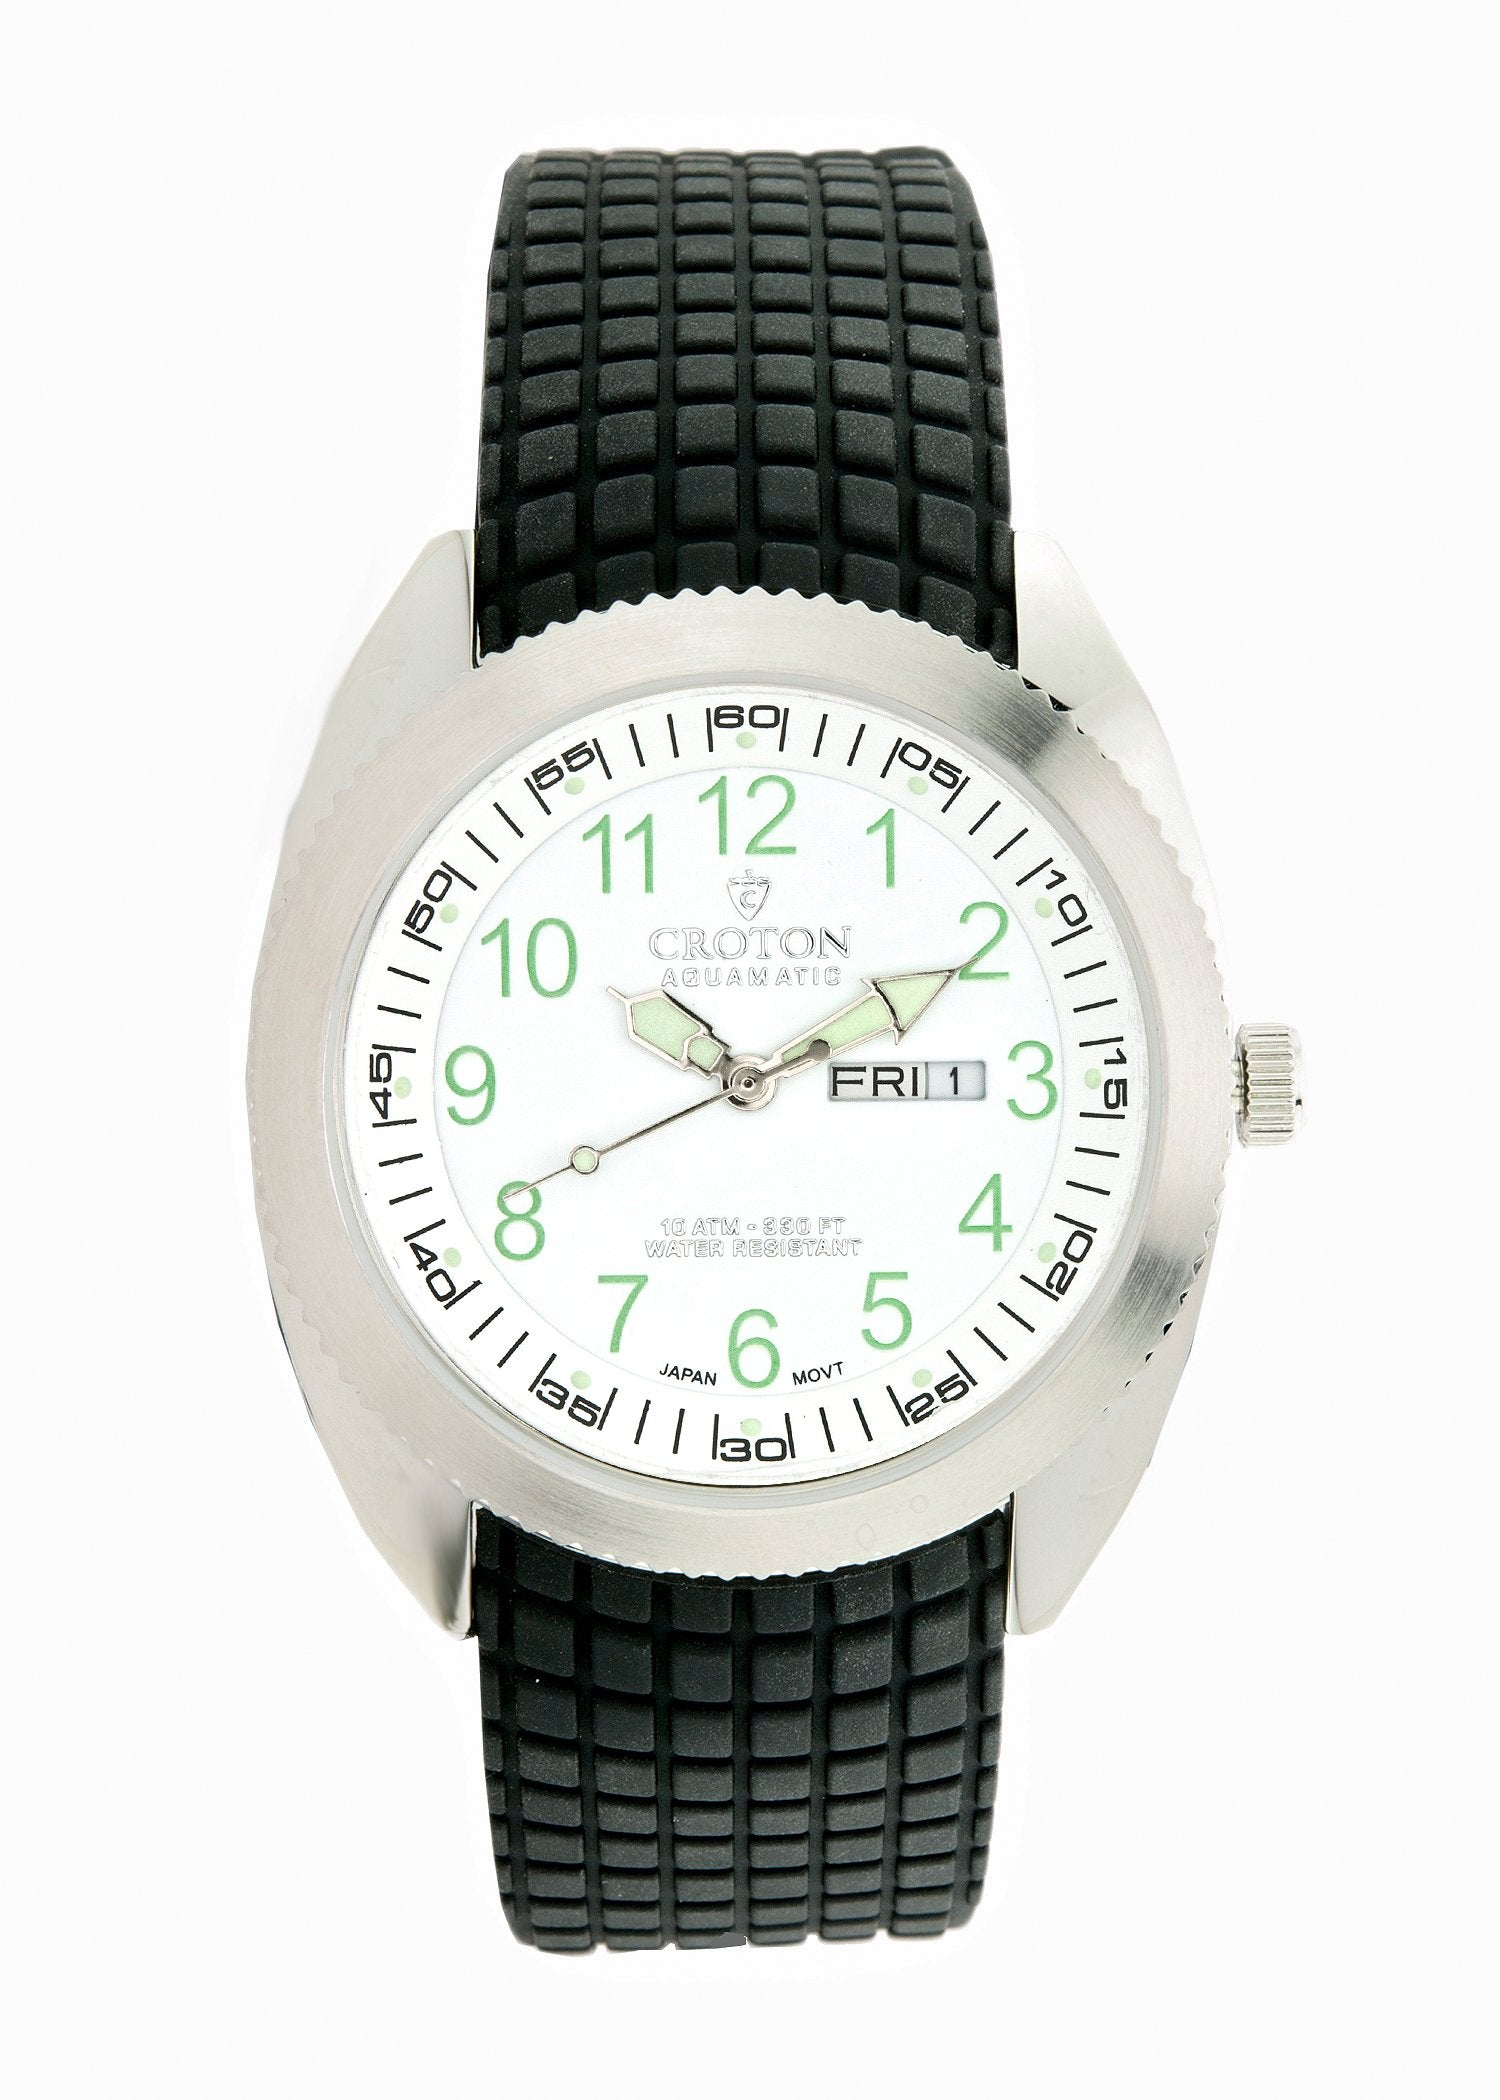 at watches watch women online s burton strap rsp pdp white olivia dial mesh bracelet buyolivia main silver